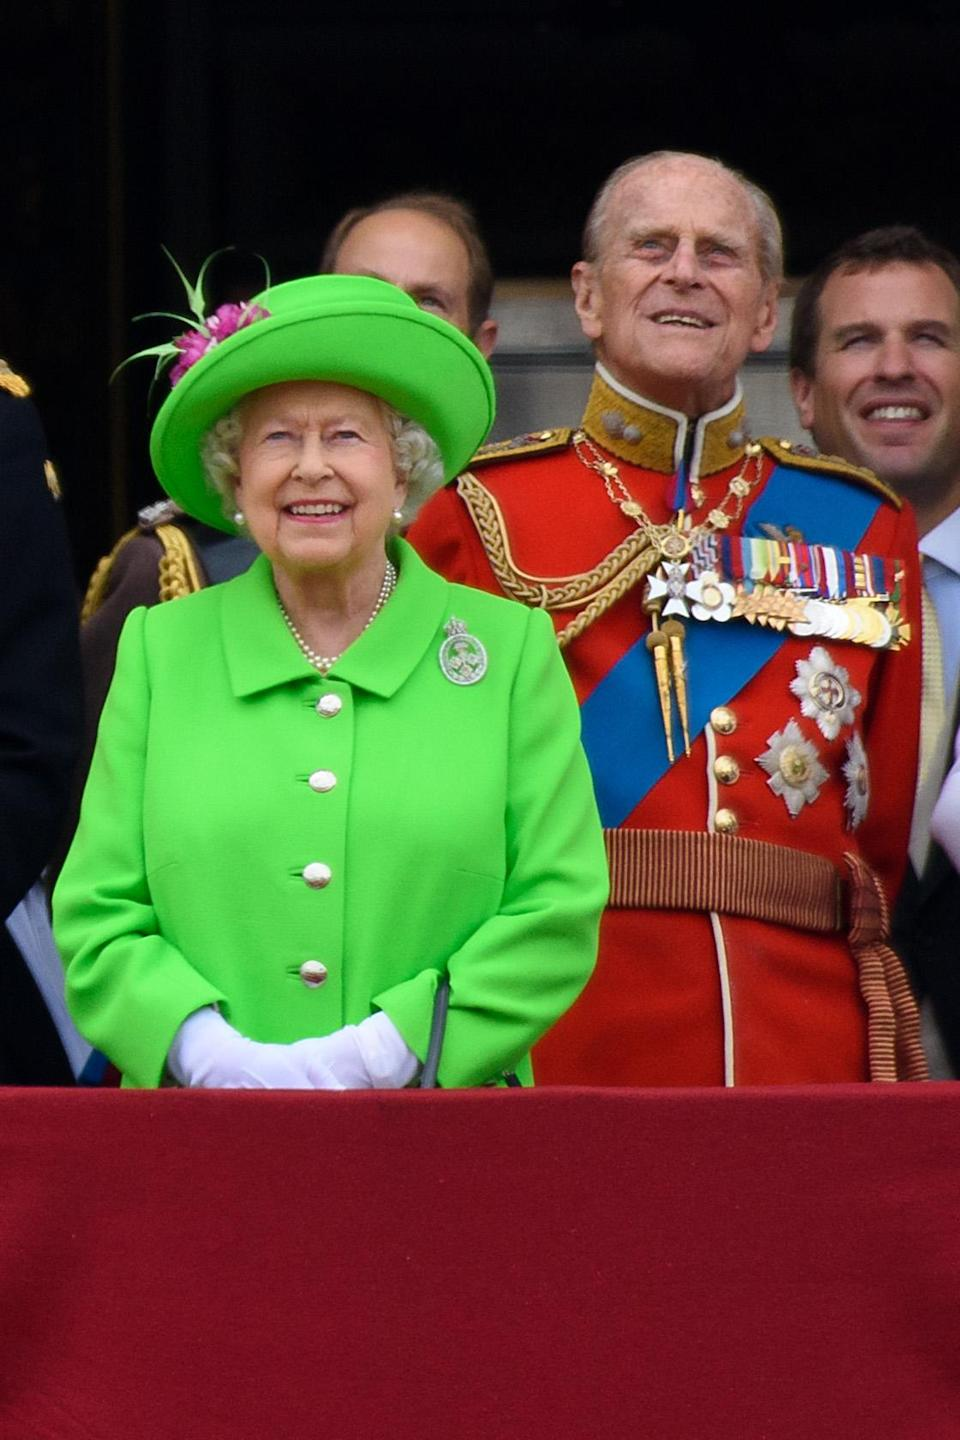 The Queen's 2017 look caused quite a stir on social media, as the hashtag #neonat90 soon began trending. (Getty Images)